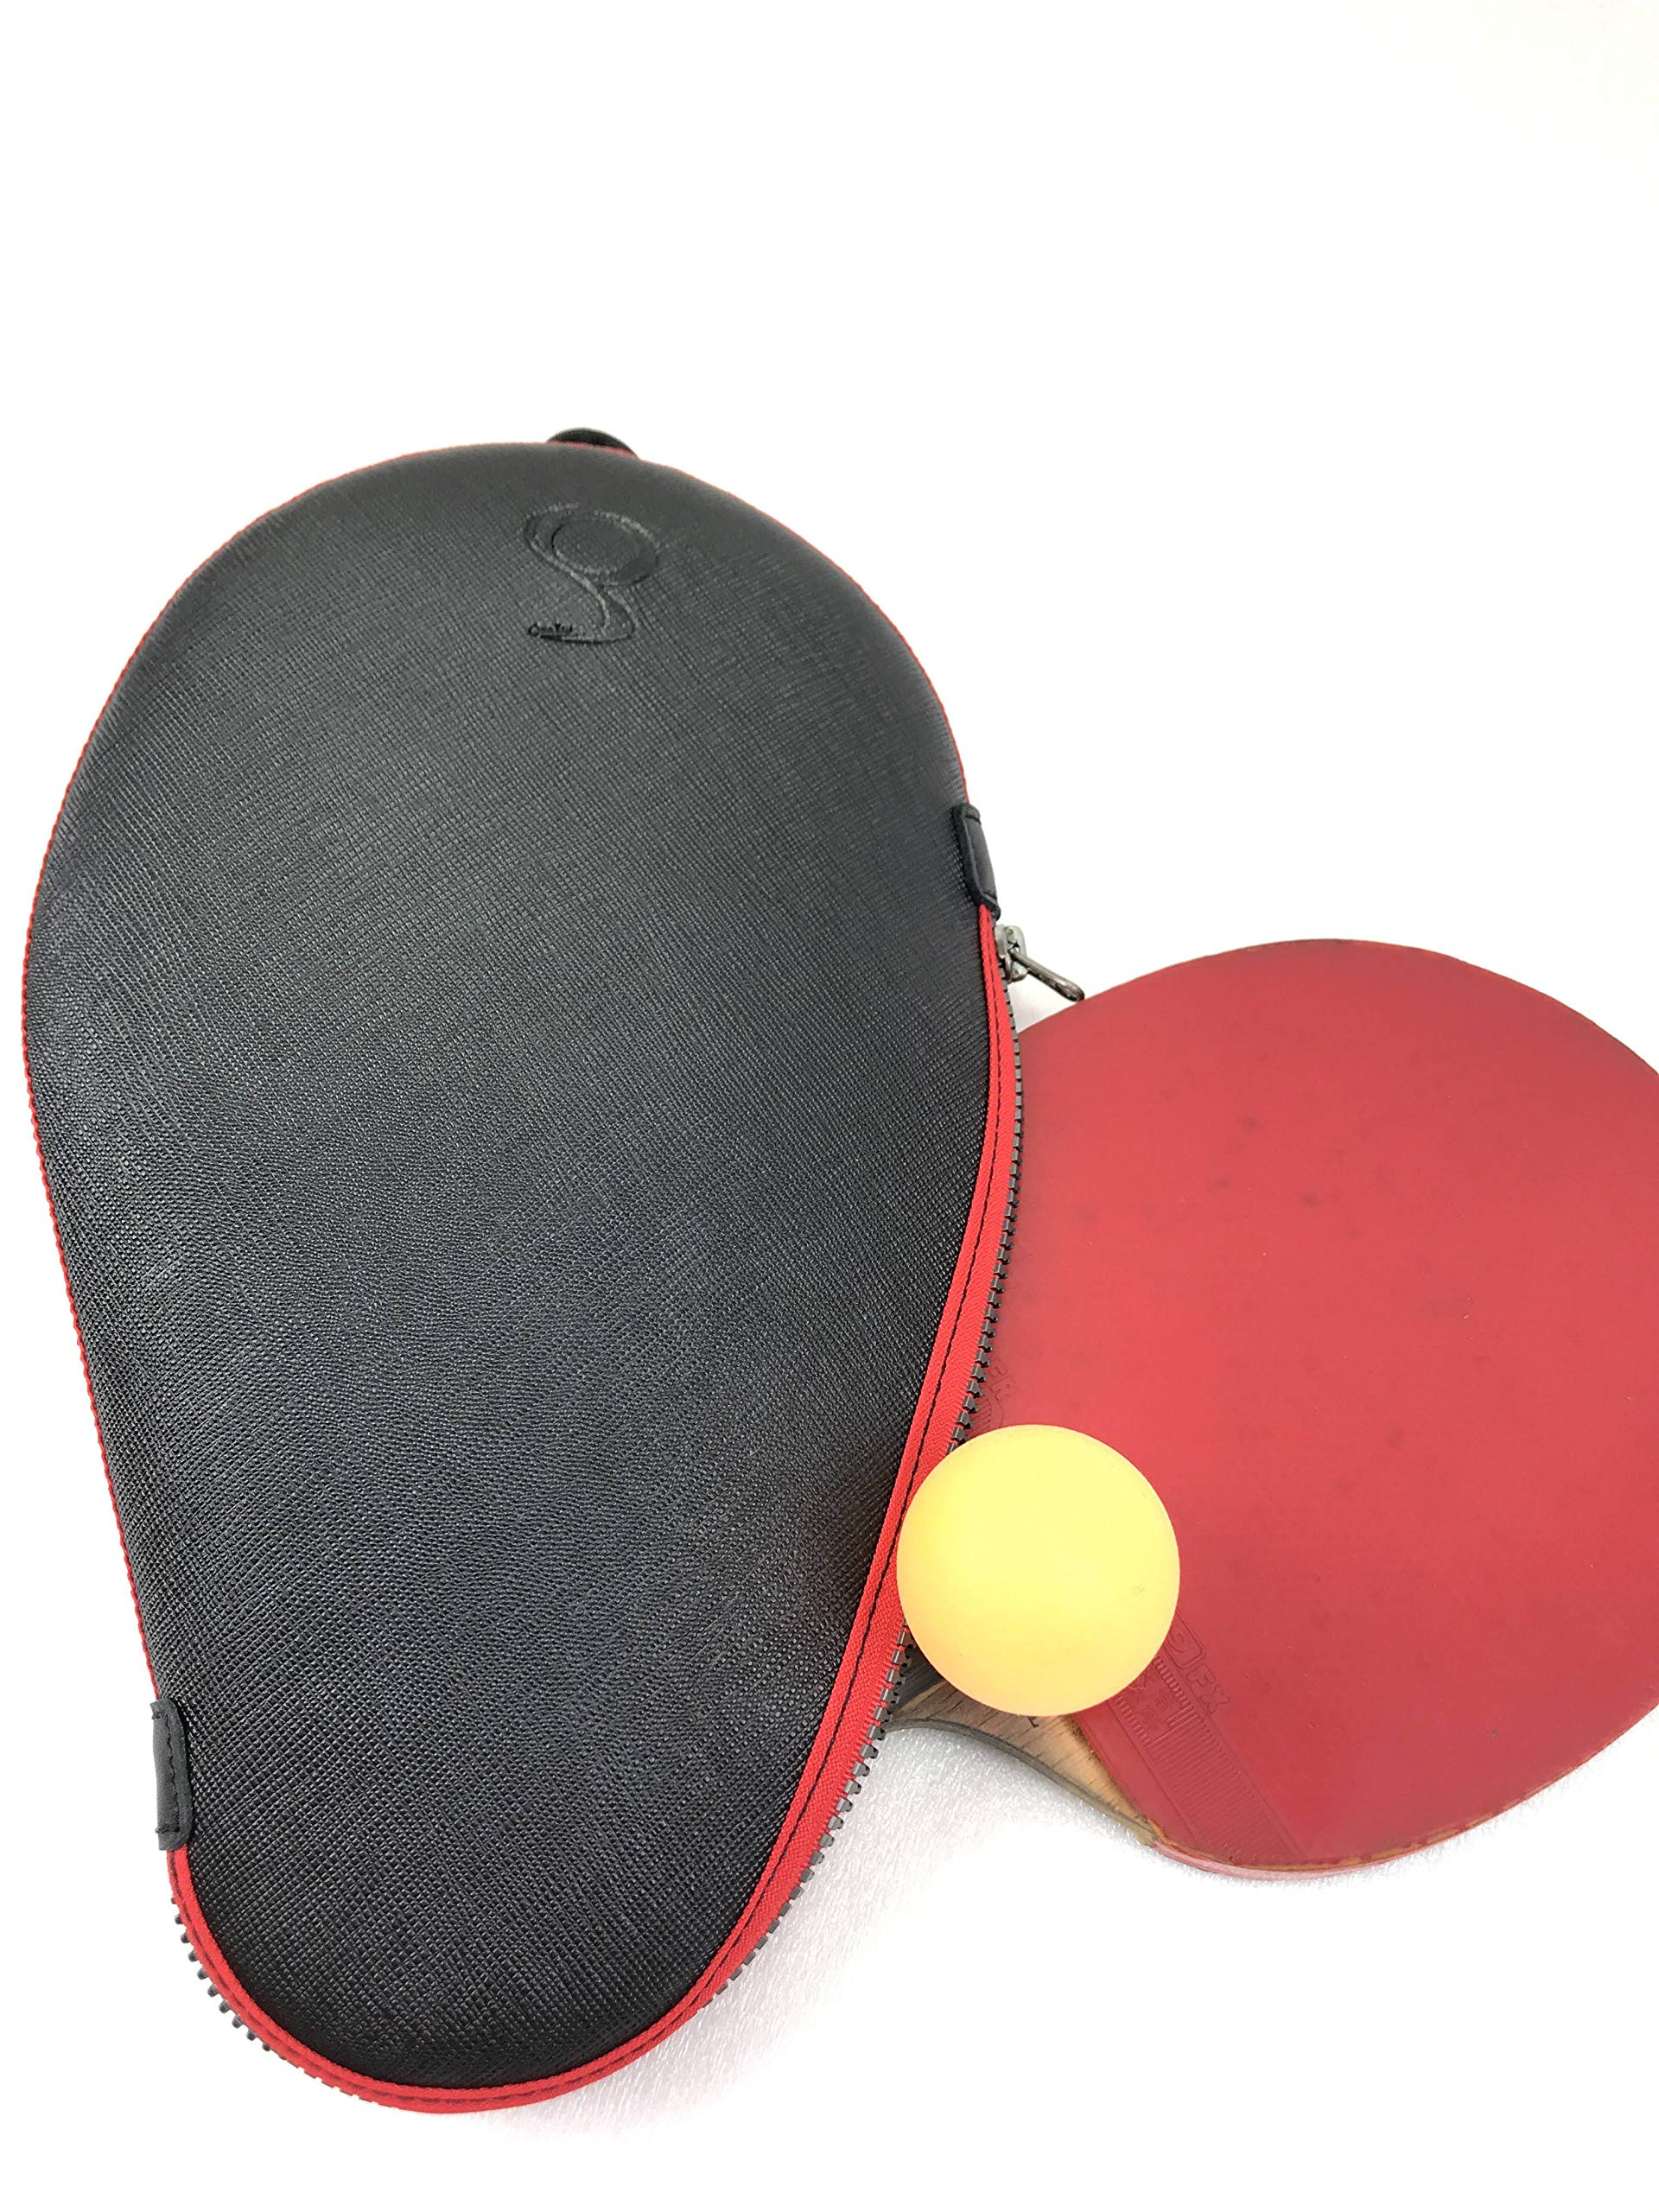 ONEJOY Ping Pong, Table Tennis Racquet Bag,Case,Cover with Zipper AJ61,Loop to Hook, Full Cover 28cm x 17cm for 1 Racquet/Racket/Paddle. by ONEJOY (Image #3)